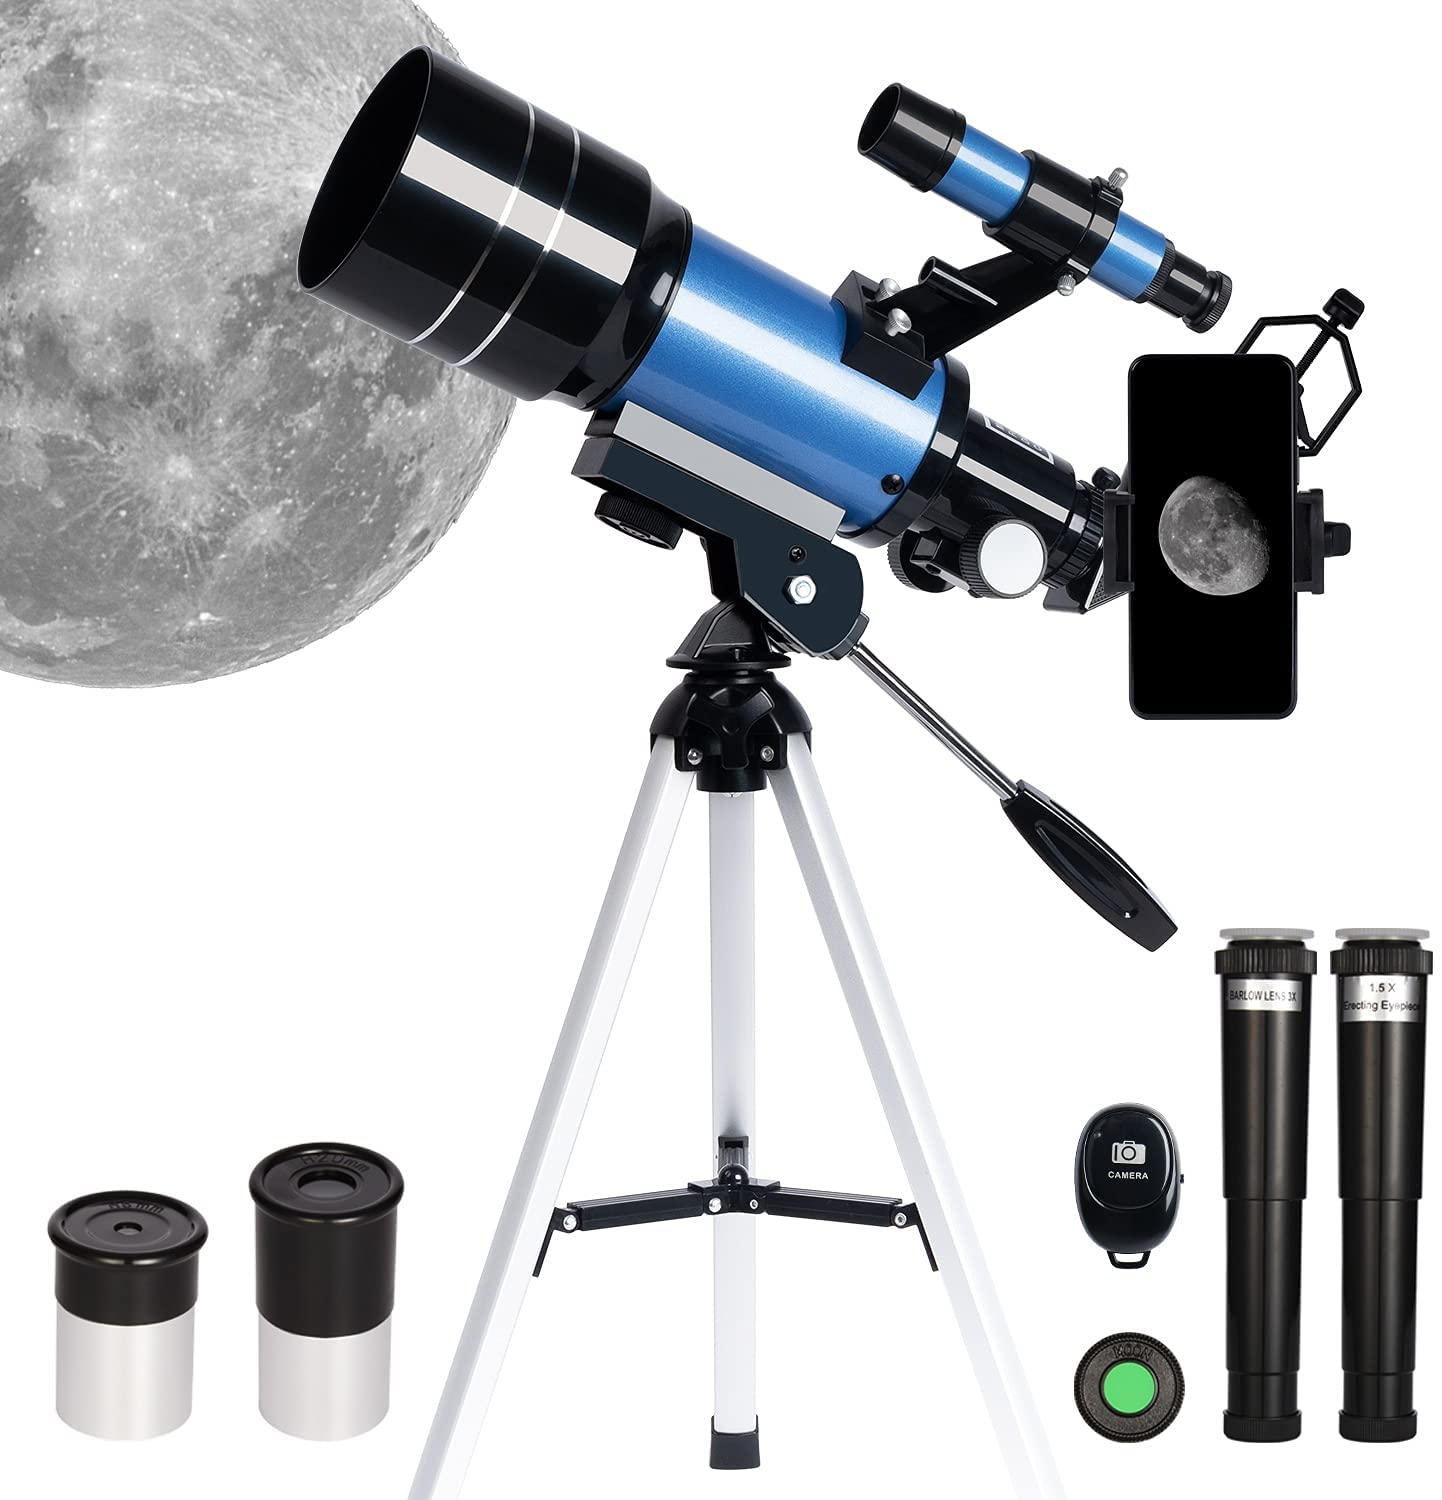 ESAKO Telescope for Kids & Beginners 70mm Portable Astronomical Telescopes with Monocular Phone Mount & Remote Control